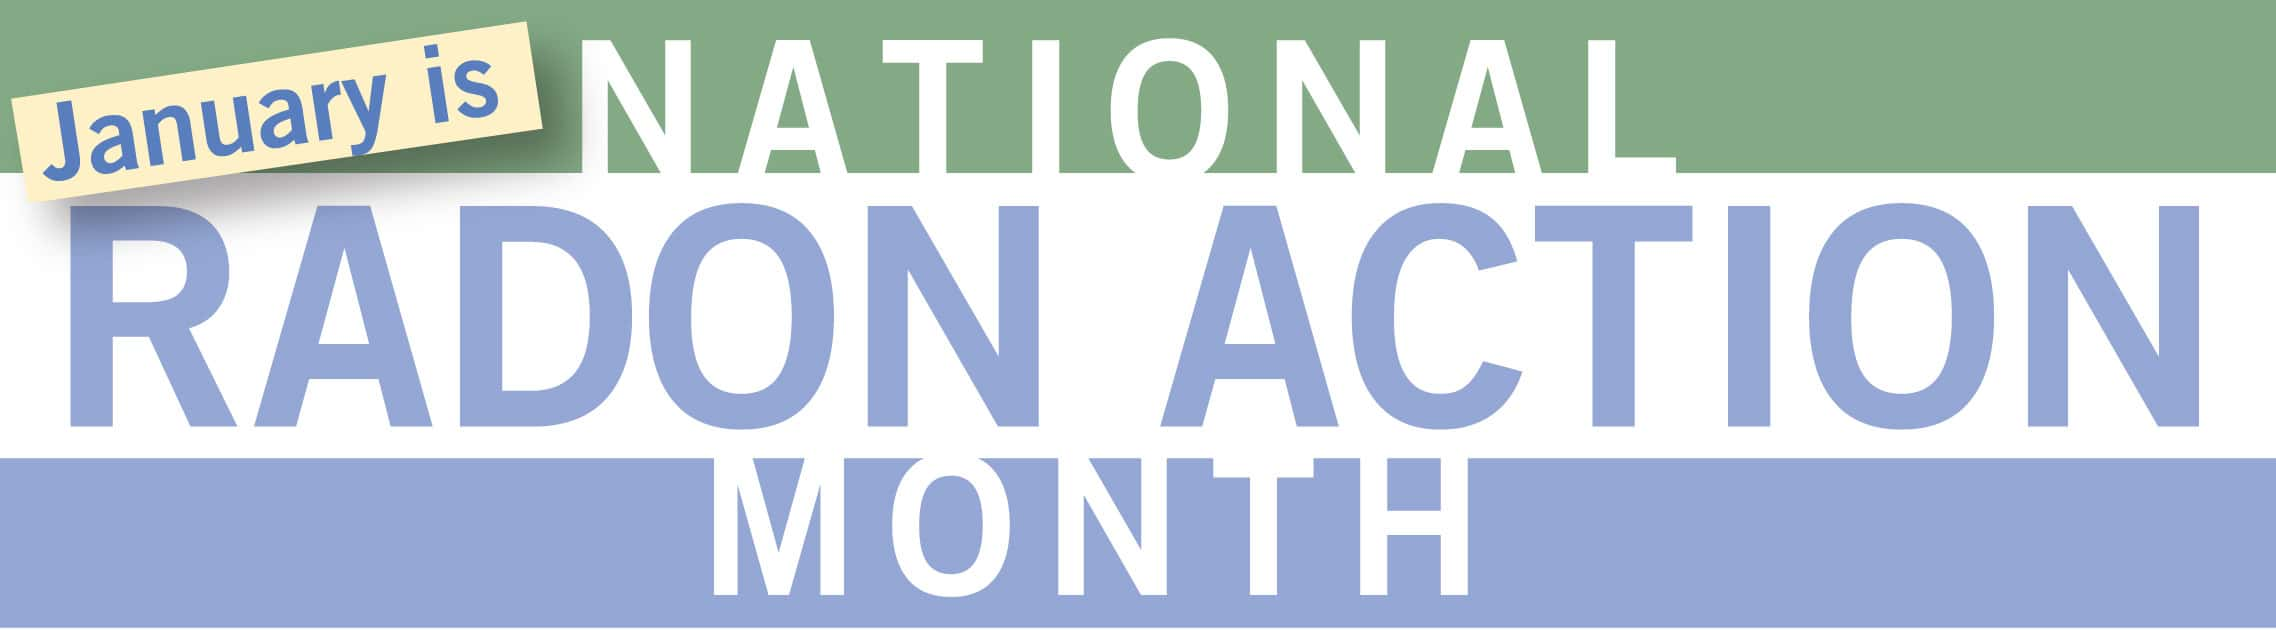 national radon month is going on Resources related to national radon action month jump to main content us epa united states environmental national radon action month resources and materials.